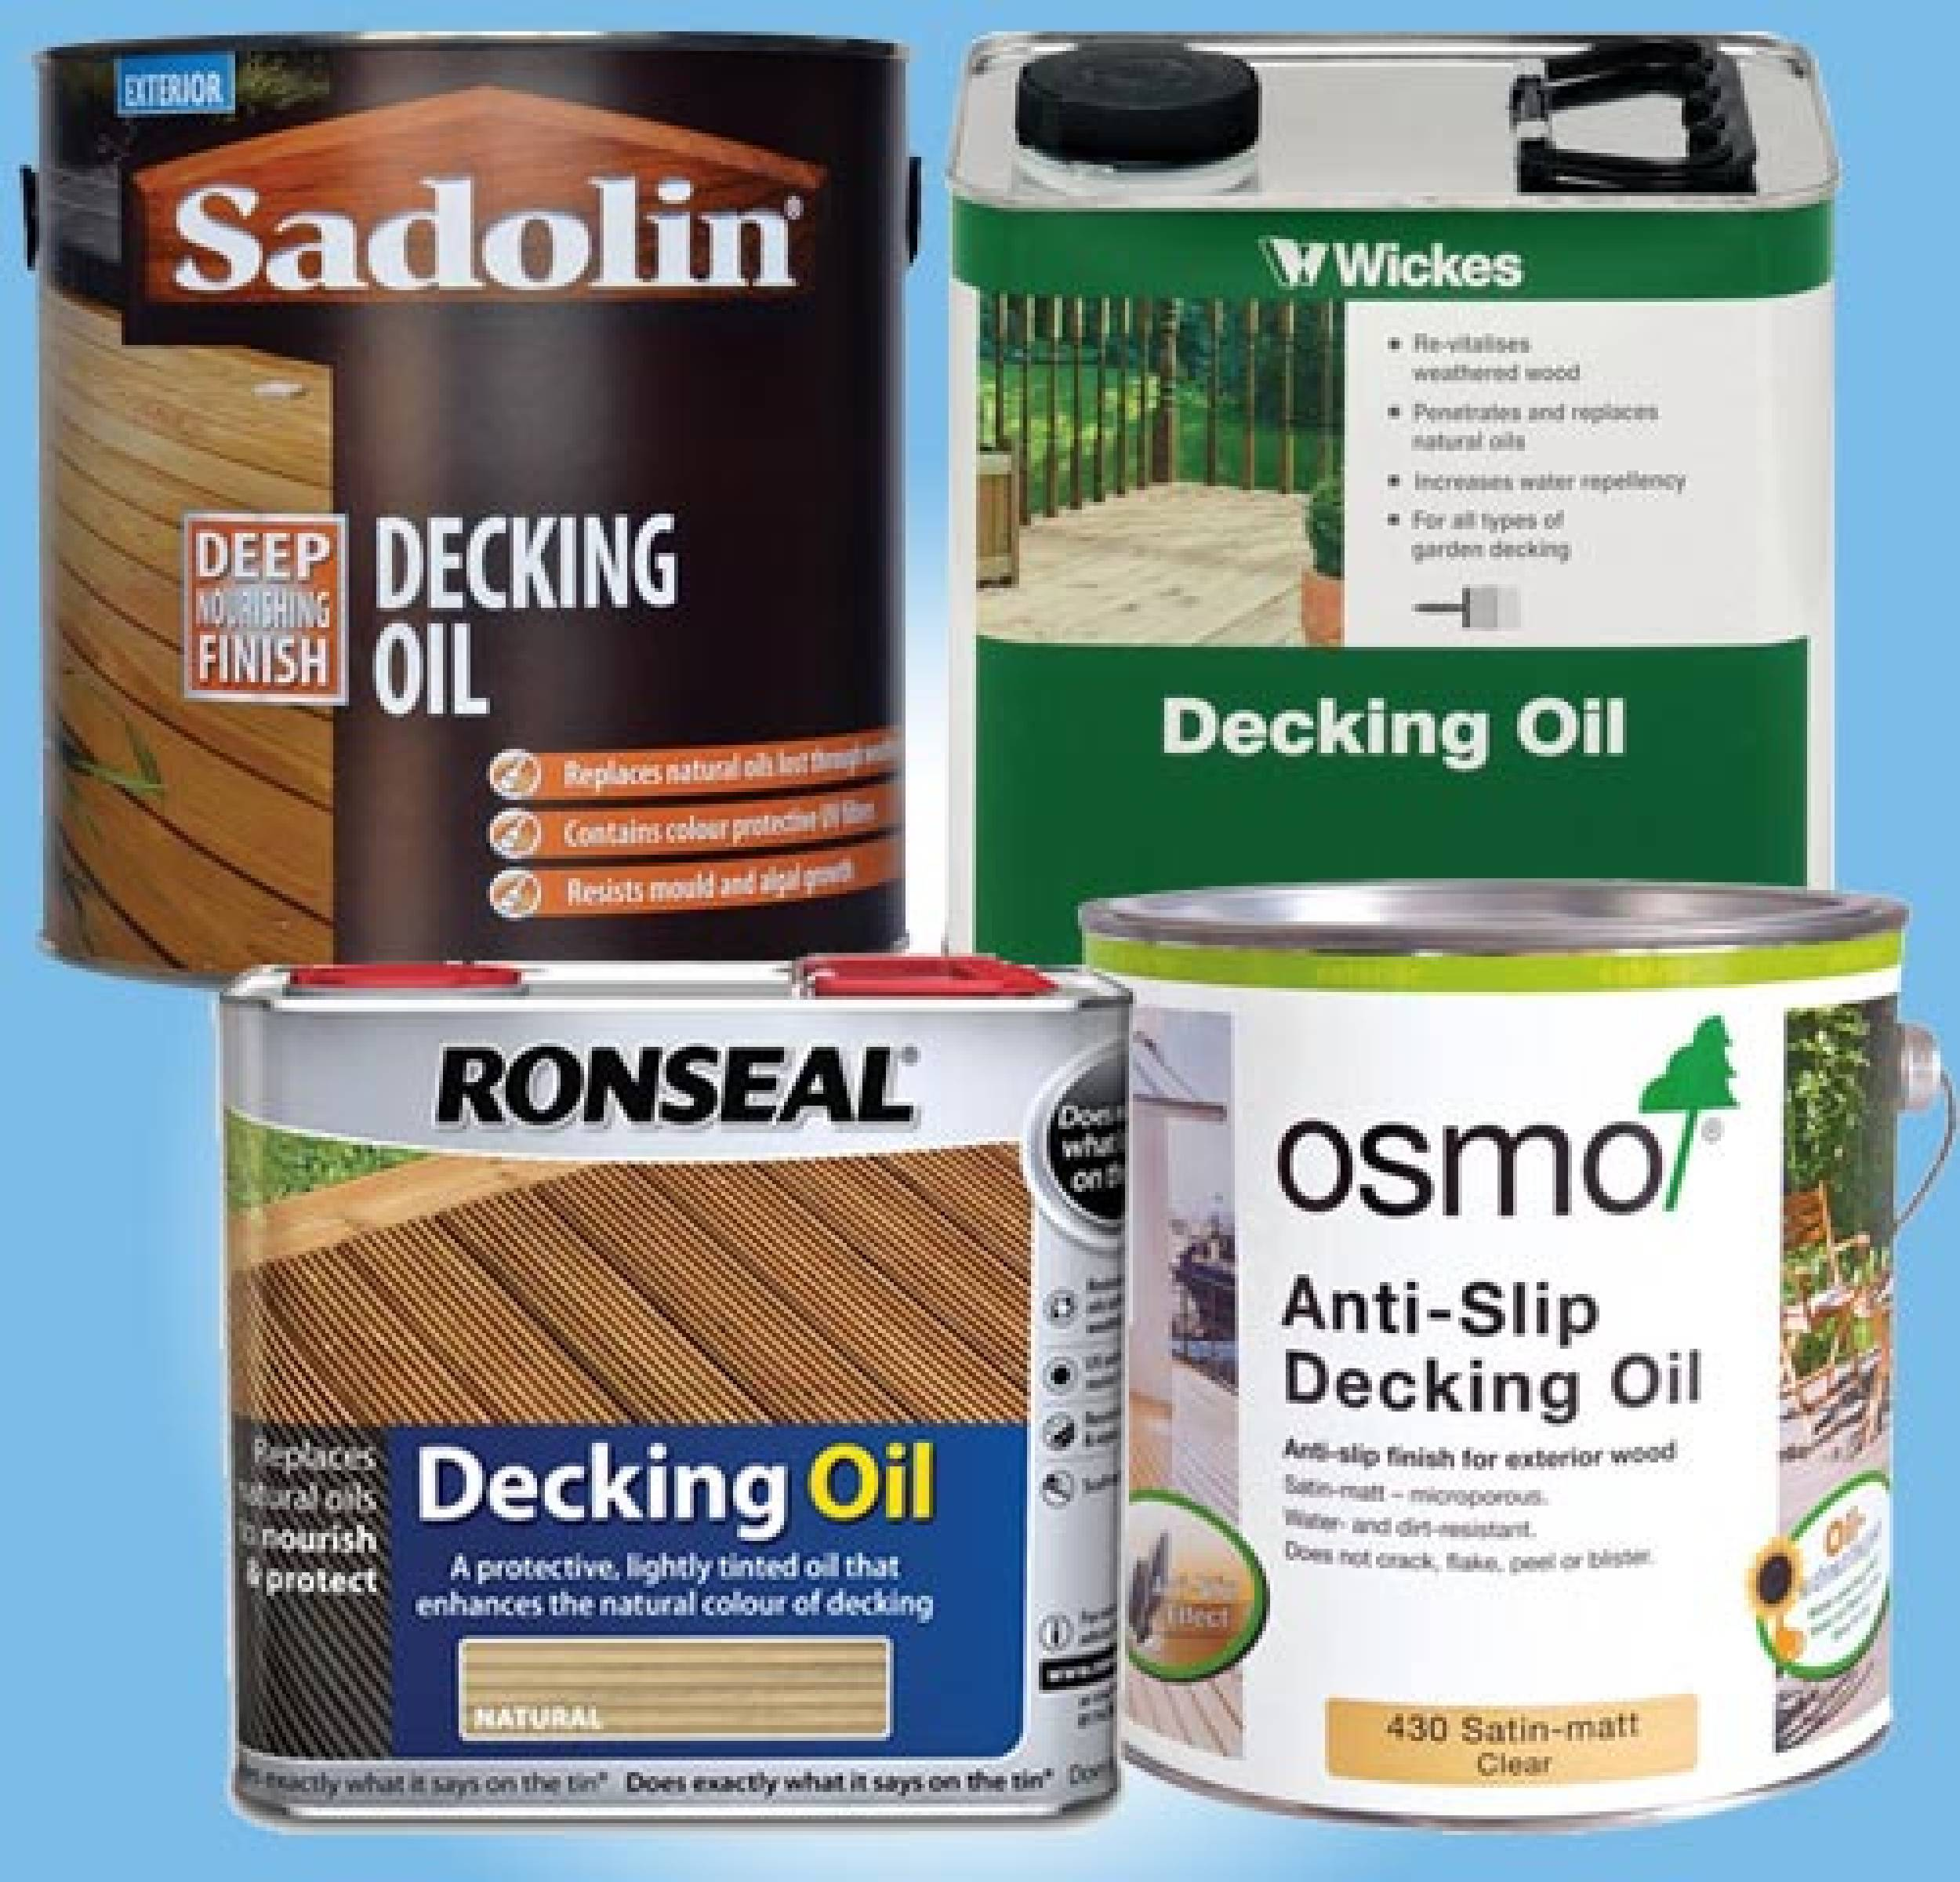 5 major advantages of decking oil for quality annual maintenance of your timber deck